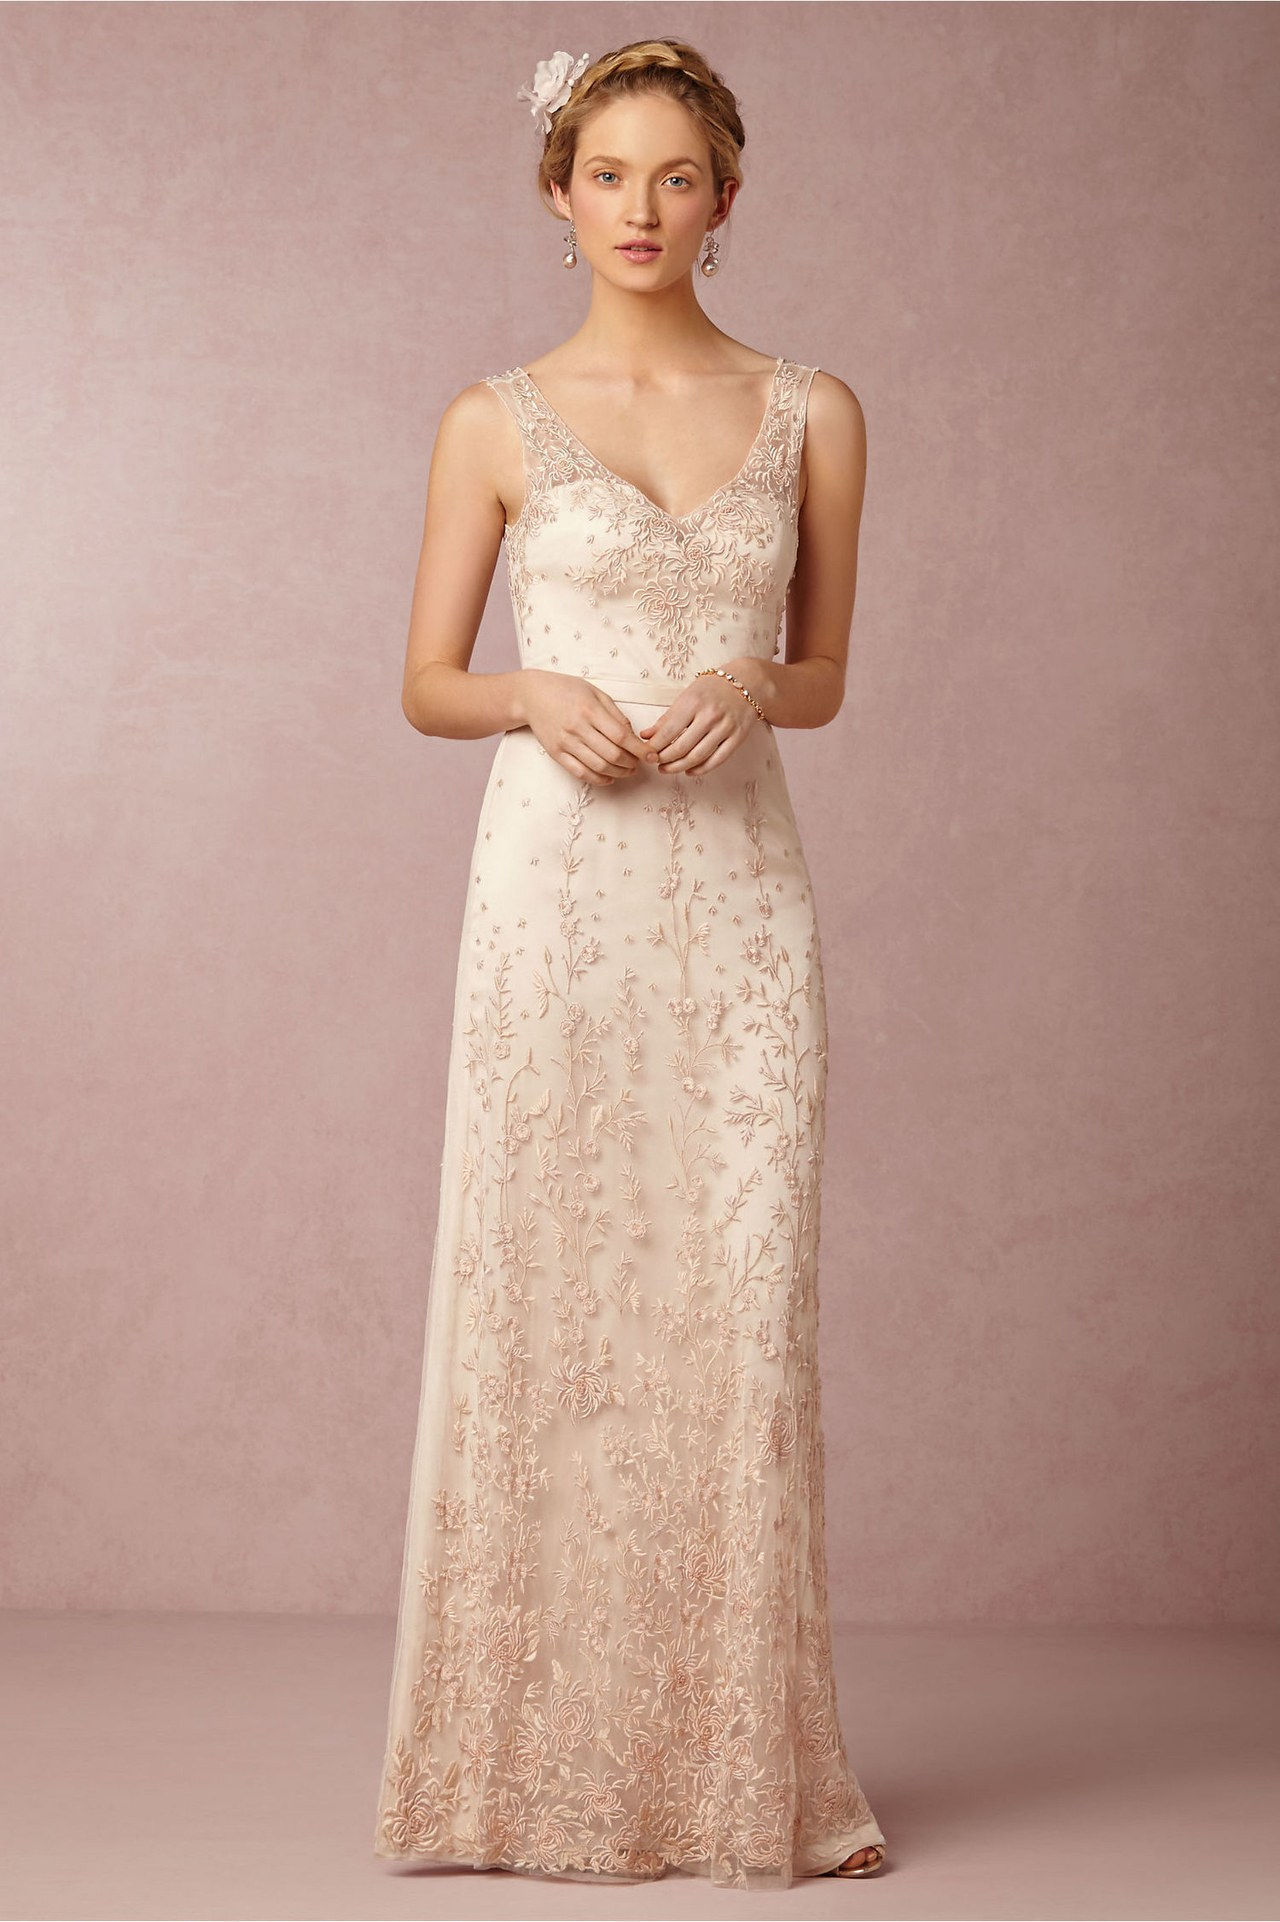 5a 2 in 1 wedding dresses wedding gowns mix and match wedding dresses bhldn 0430 courtesy